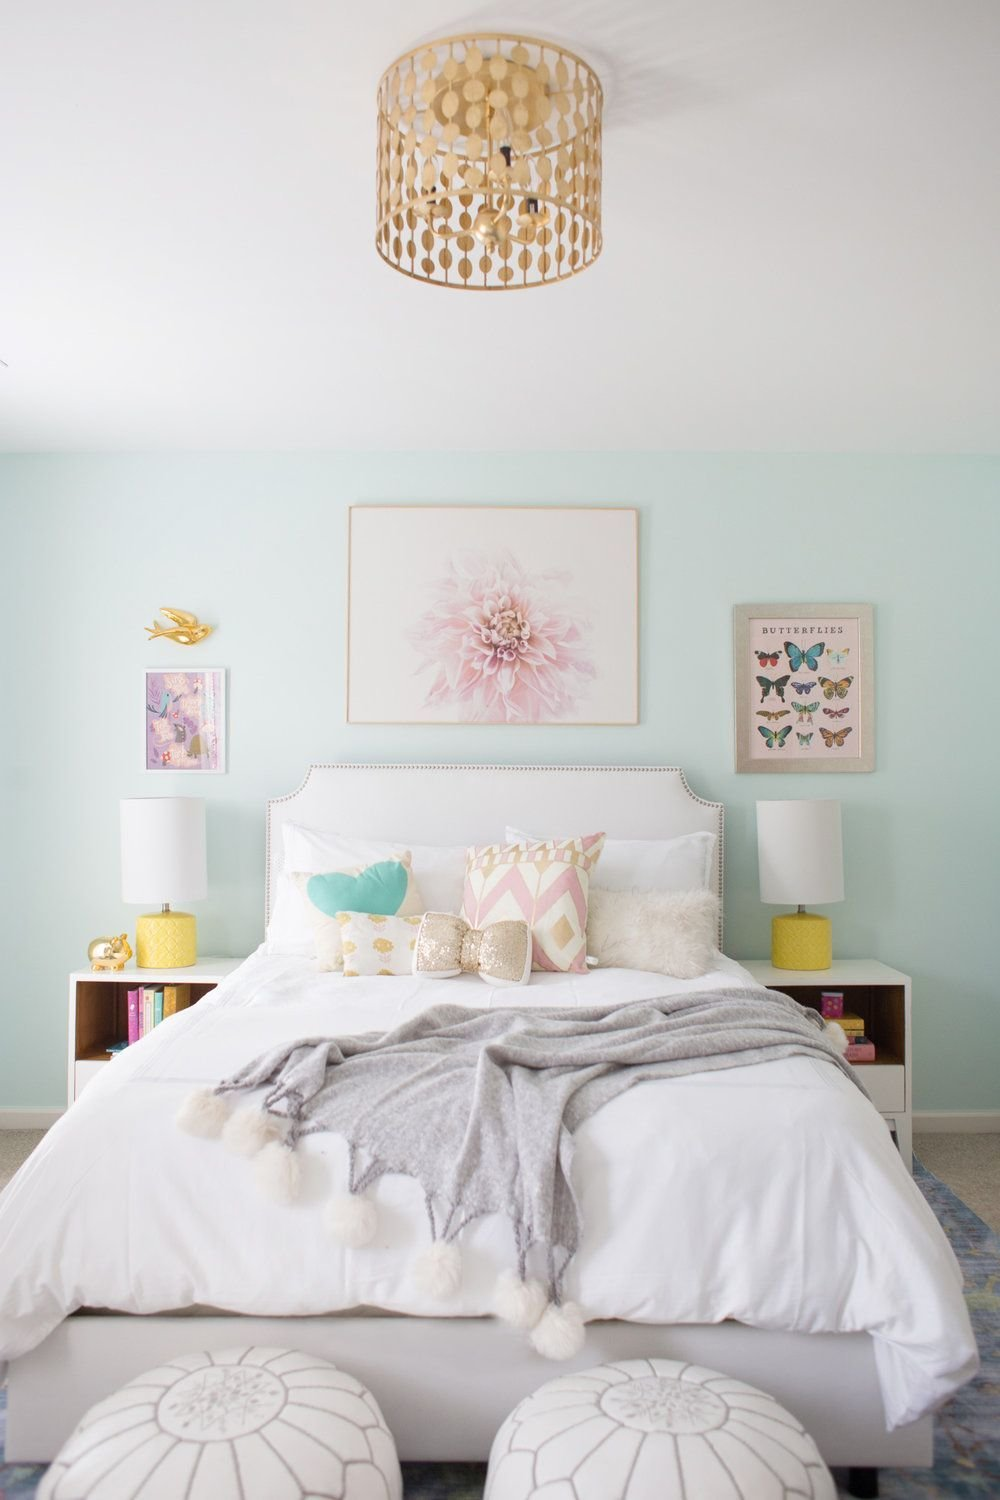 Best Pin By Aimee Camilien On Home Sweet Freakin Home In 2019 With Pictures